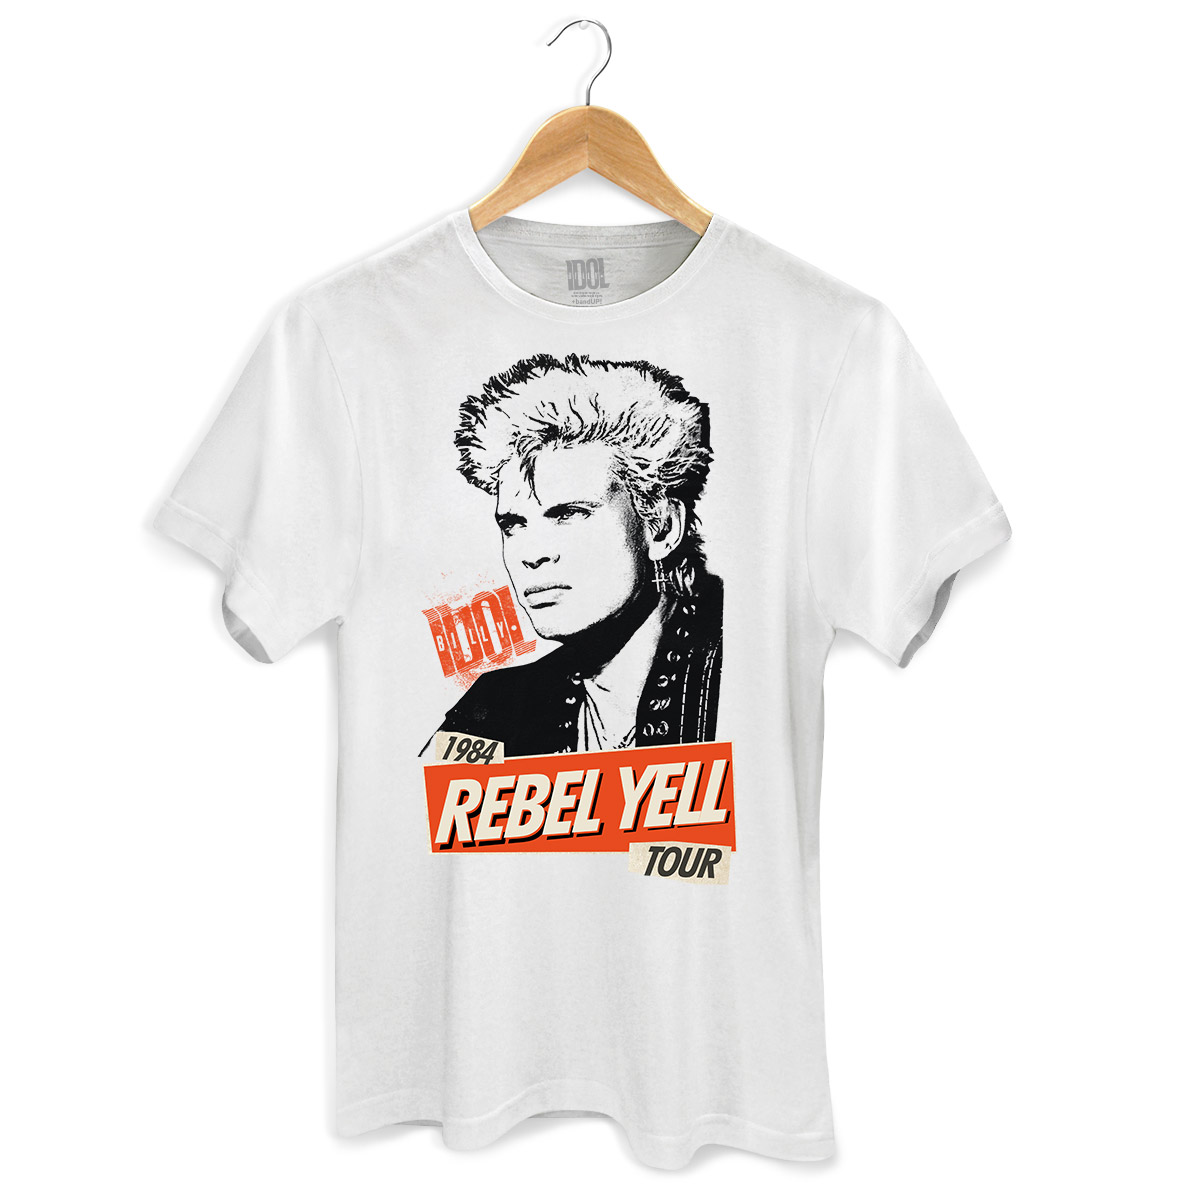 Camiseta Masculina Billy Idol 1984 Rebel Yell Tour